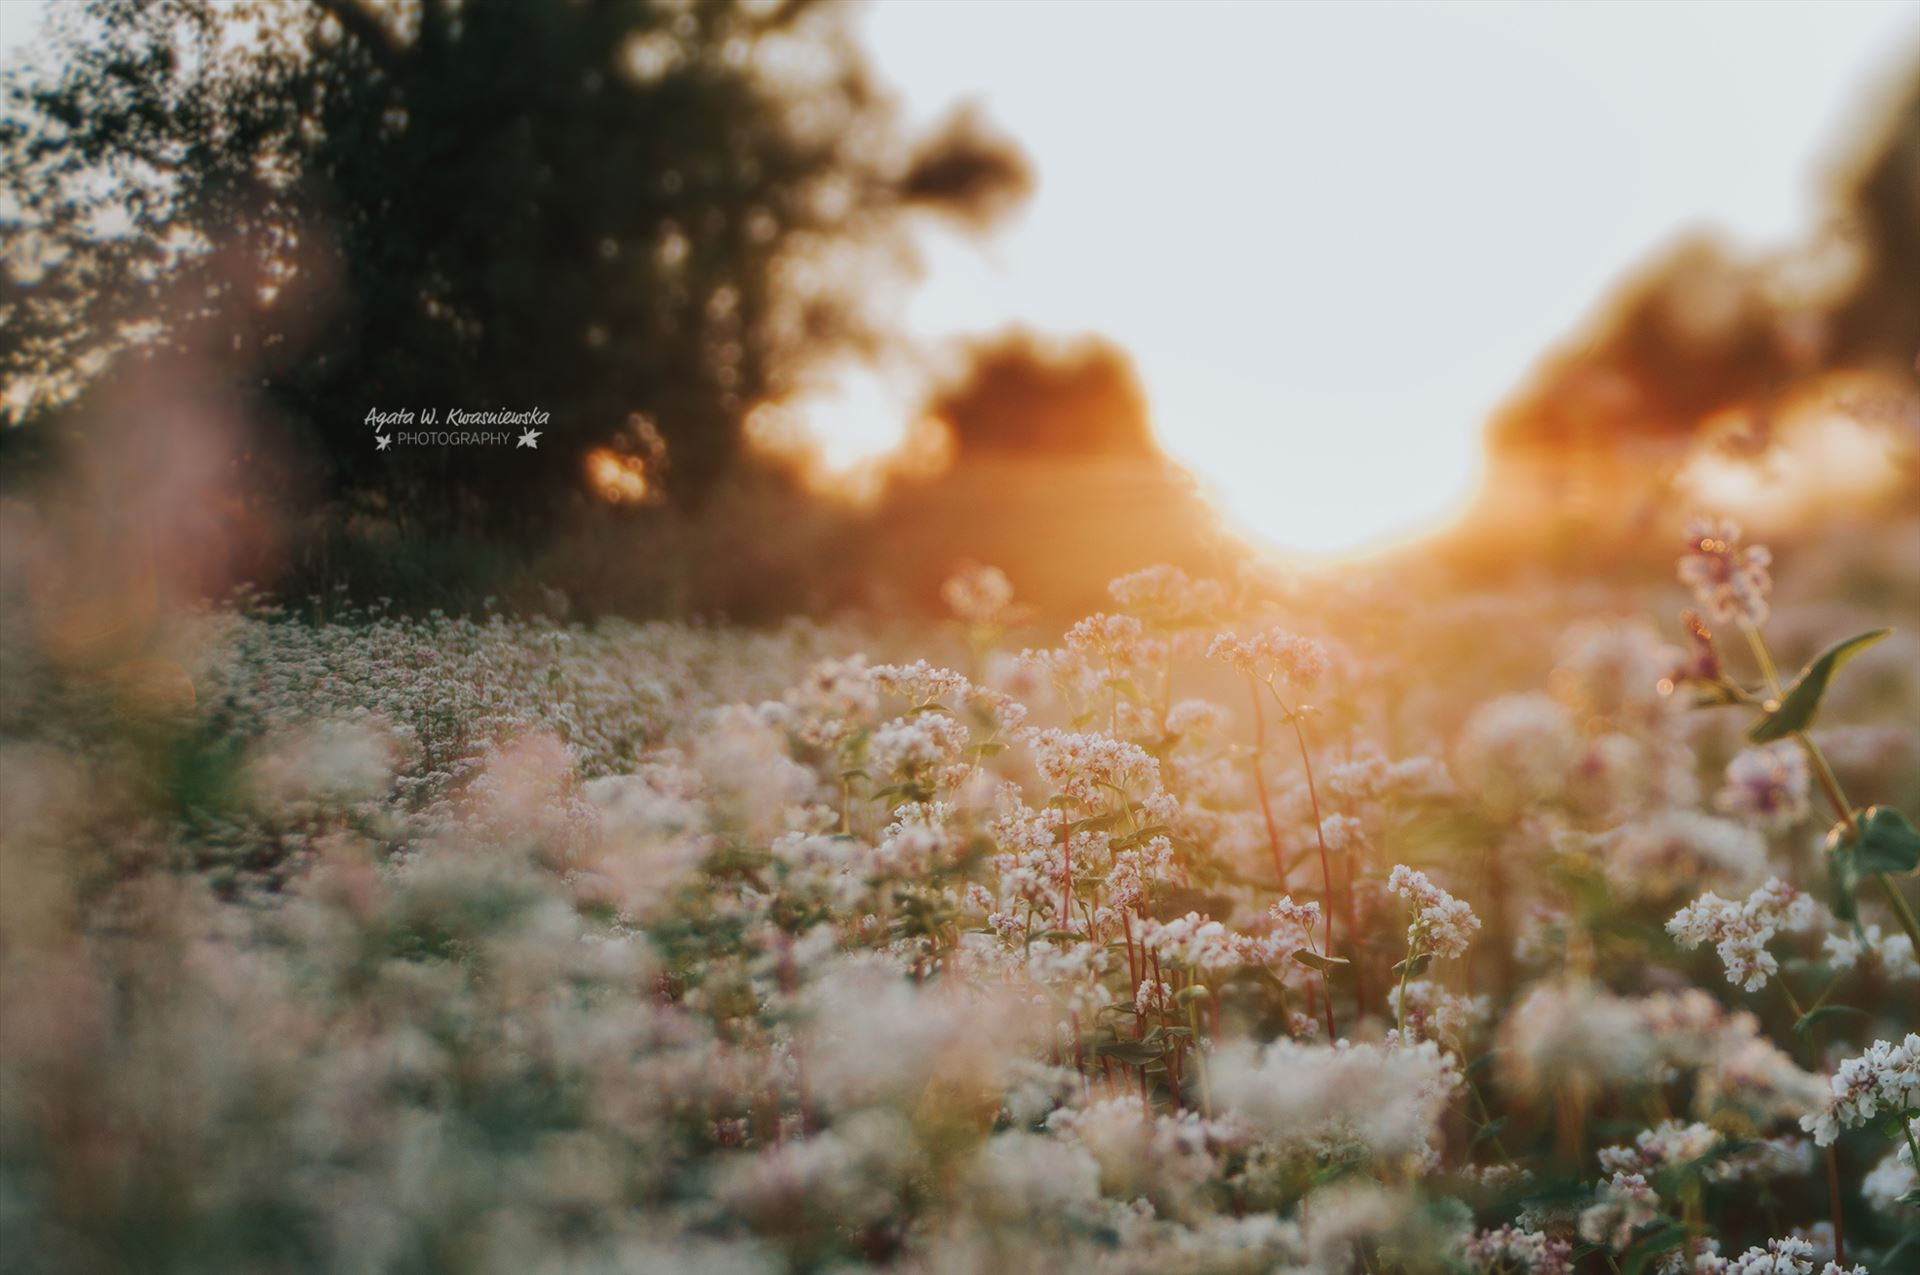 Dreamy light -  by Agata W. Kwasniewska Photography